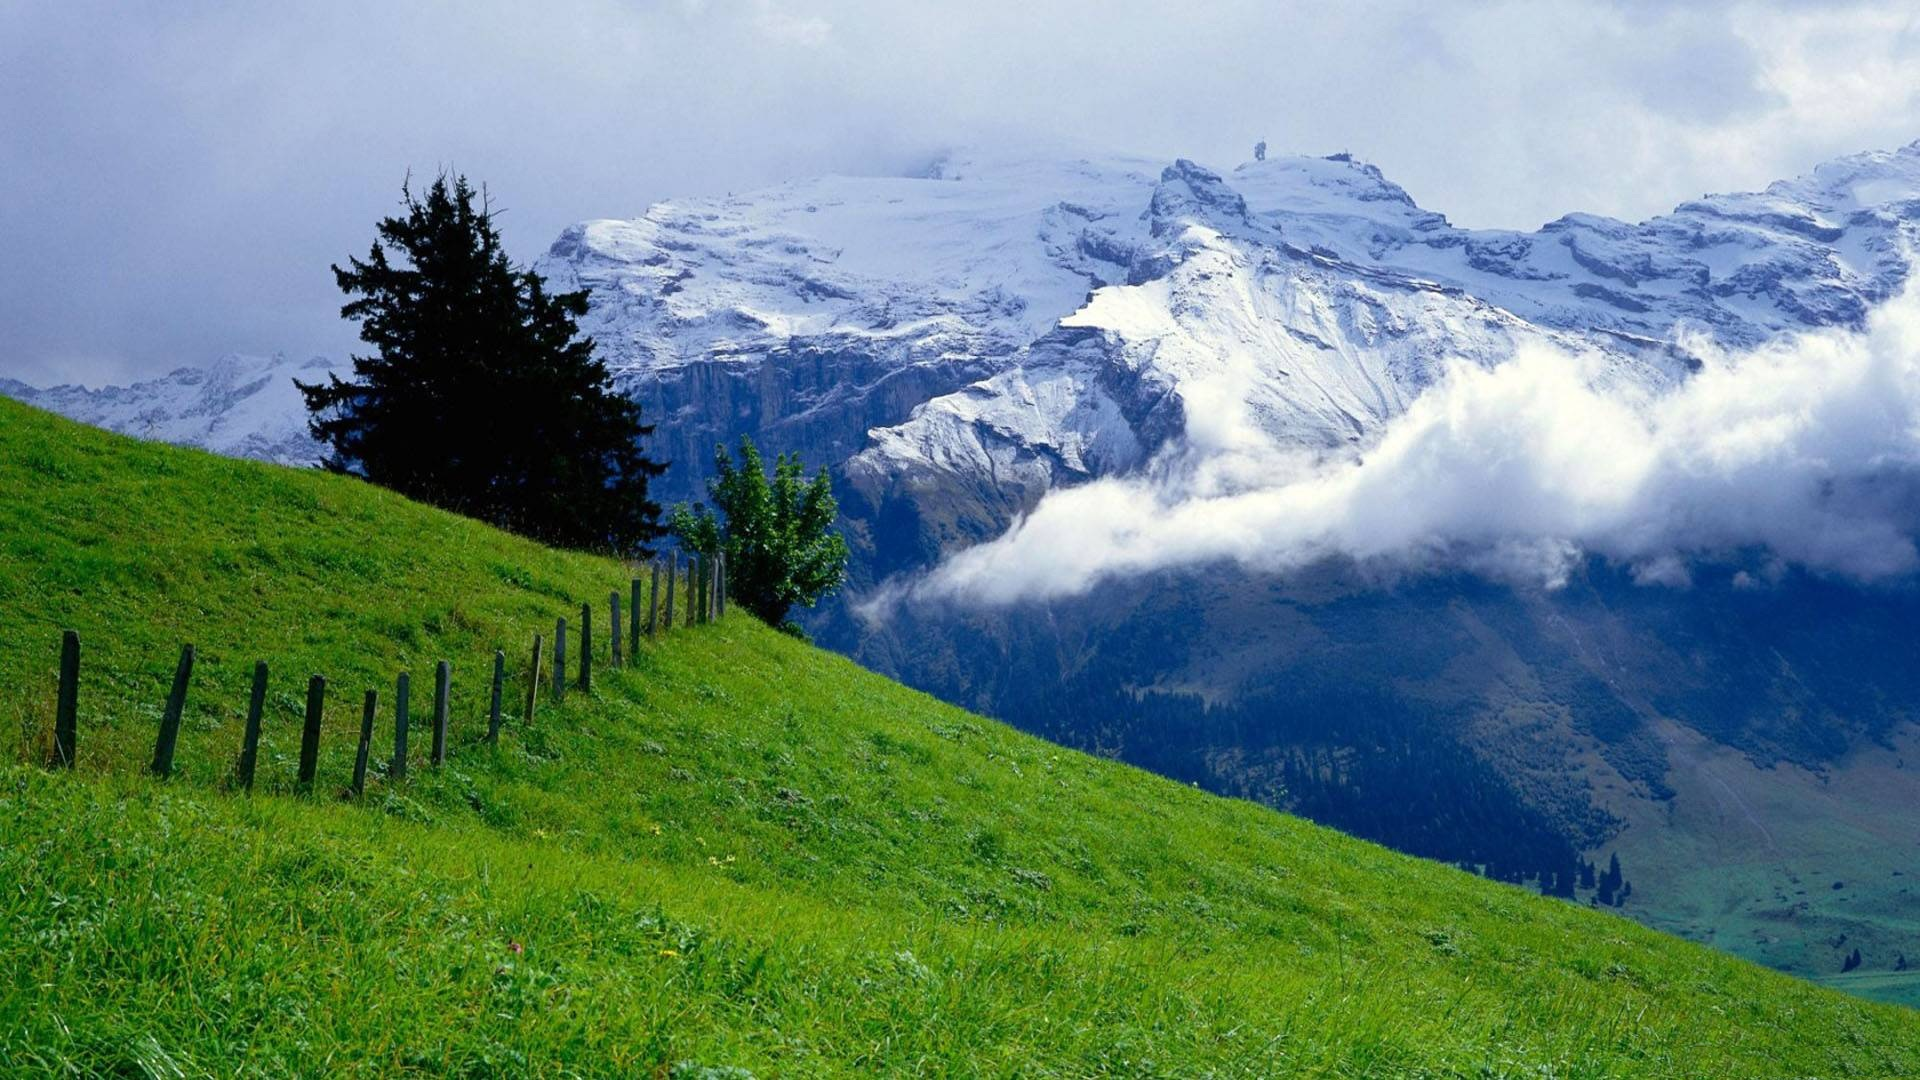 Nature Hd Wallpapers 1080p Widescreen - Nature Beauty Of Switzerland , HD Wallpaper & Backgrounds